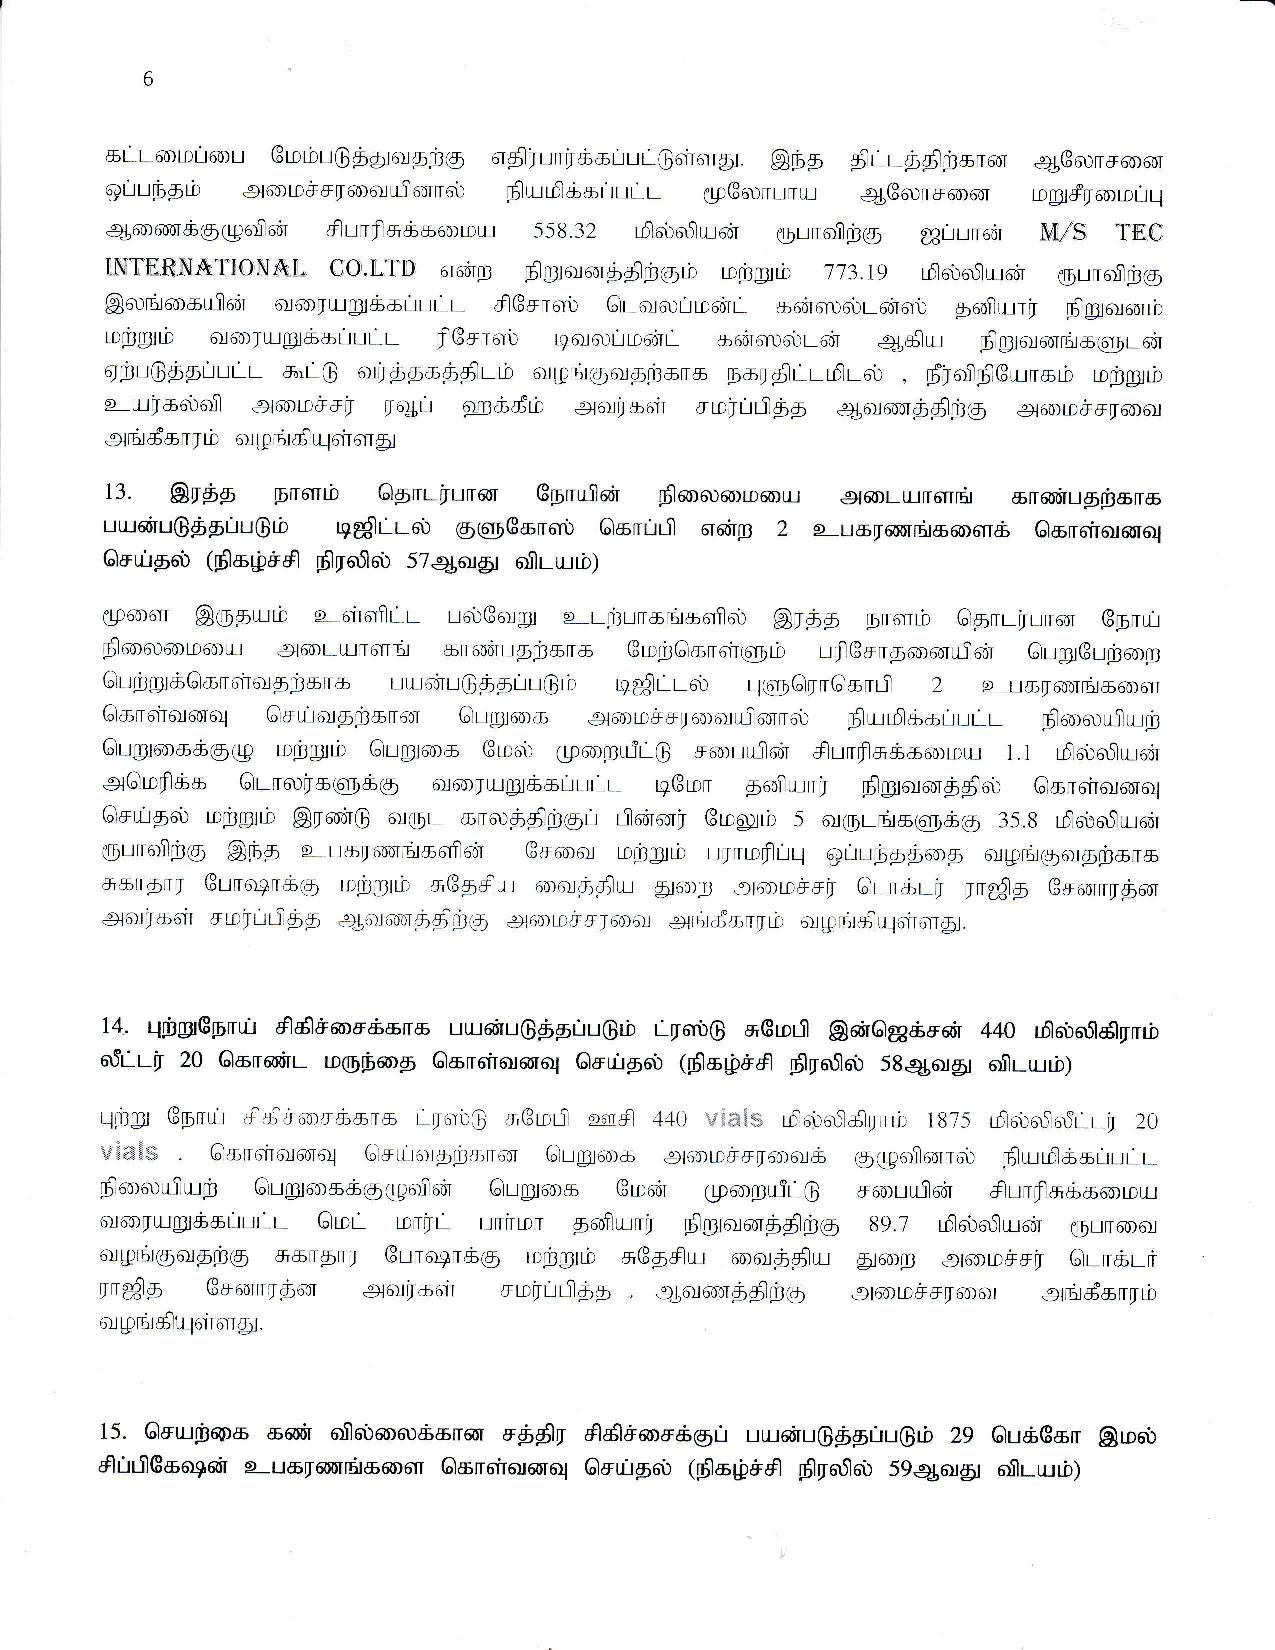 Cabinet Decision on 21.05.2019 Tamil page 007